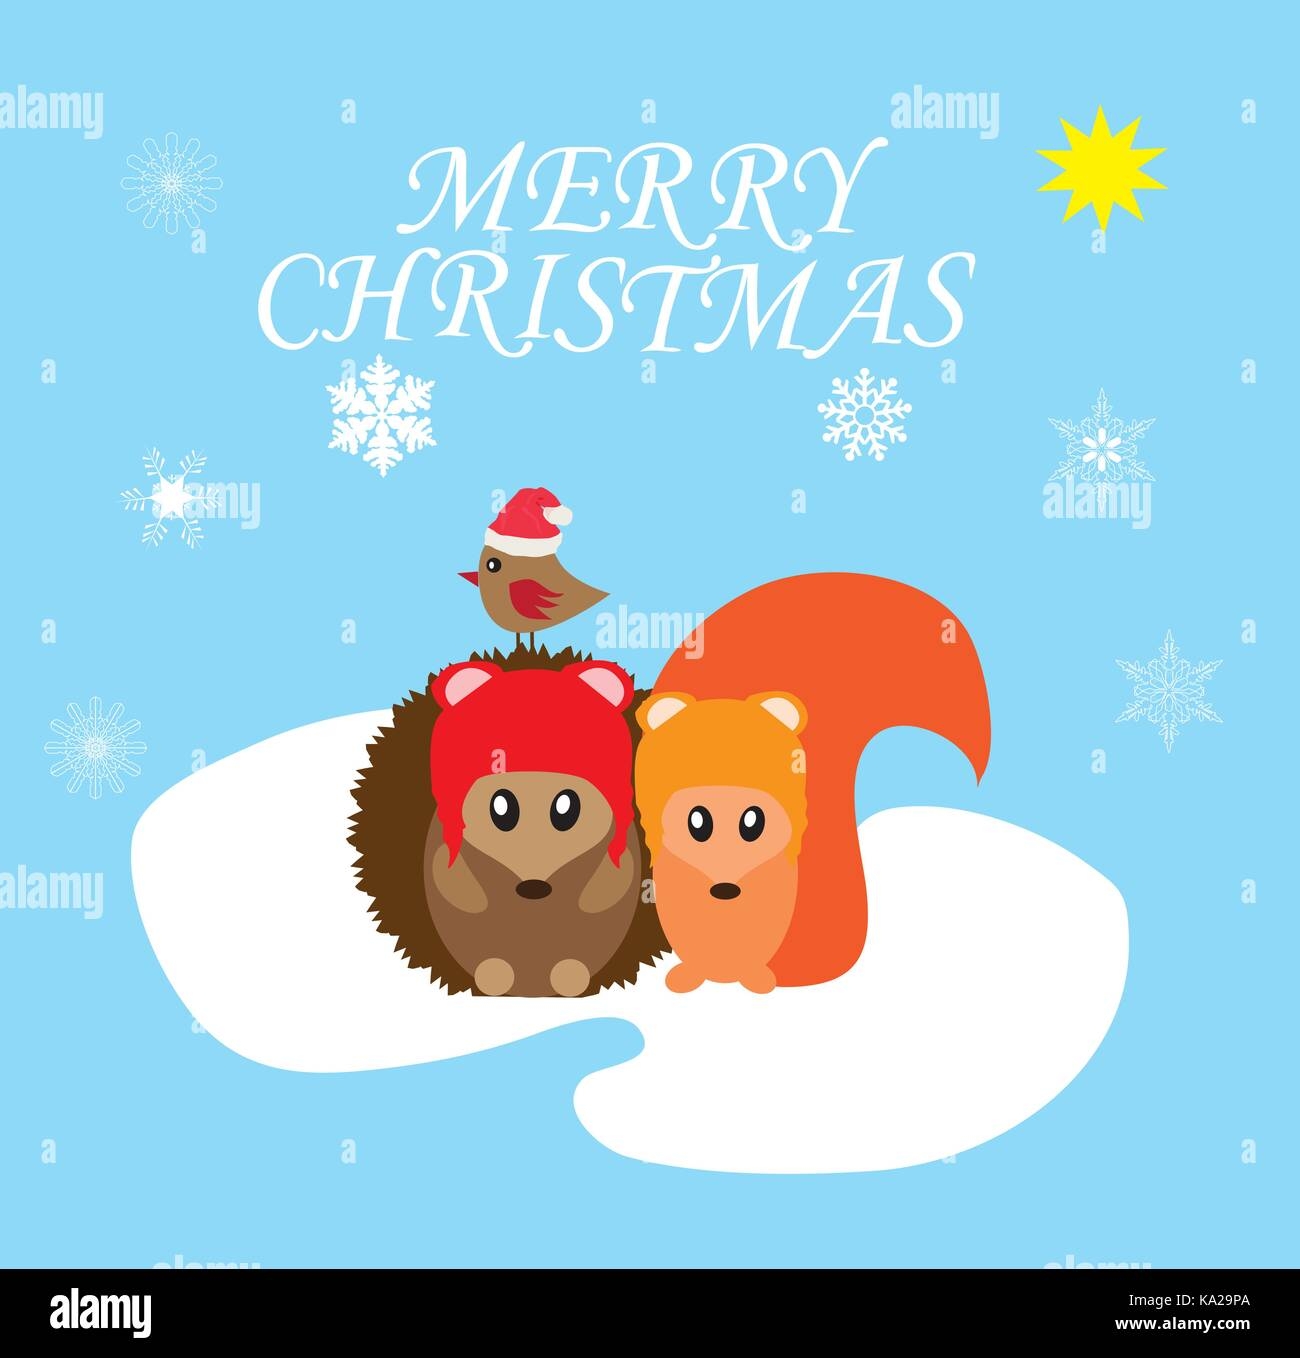 Merry Christmas Animals.Vector Illustration Of Merry Christmas Background With Cute Animals